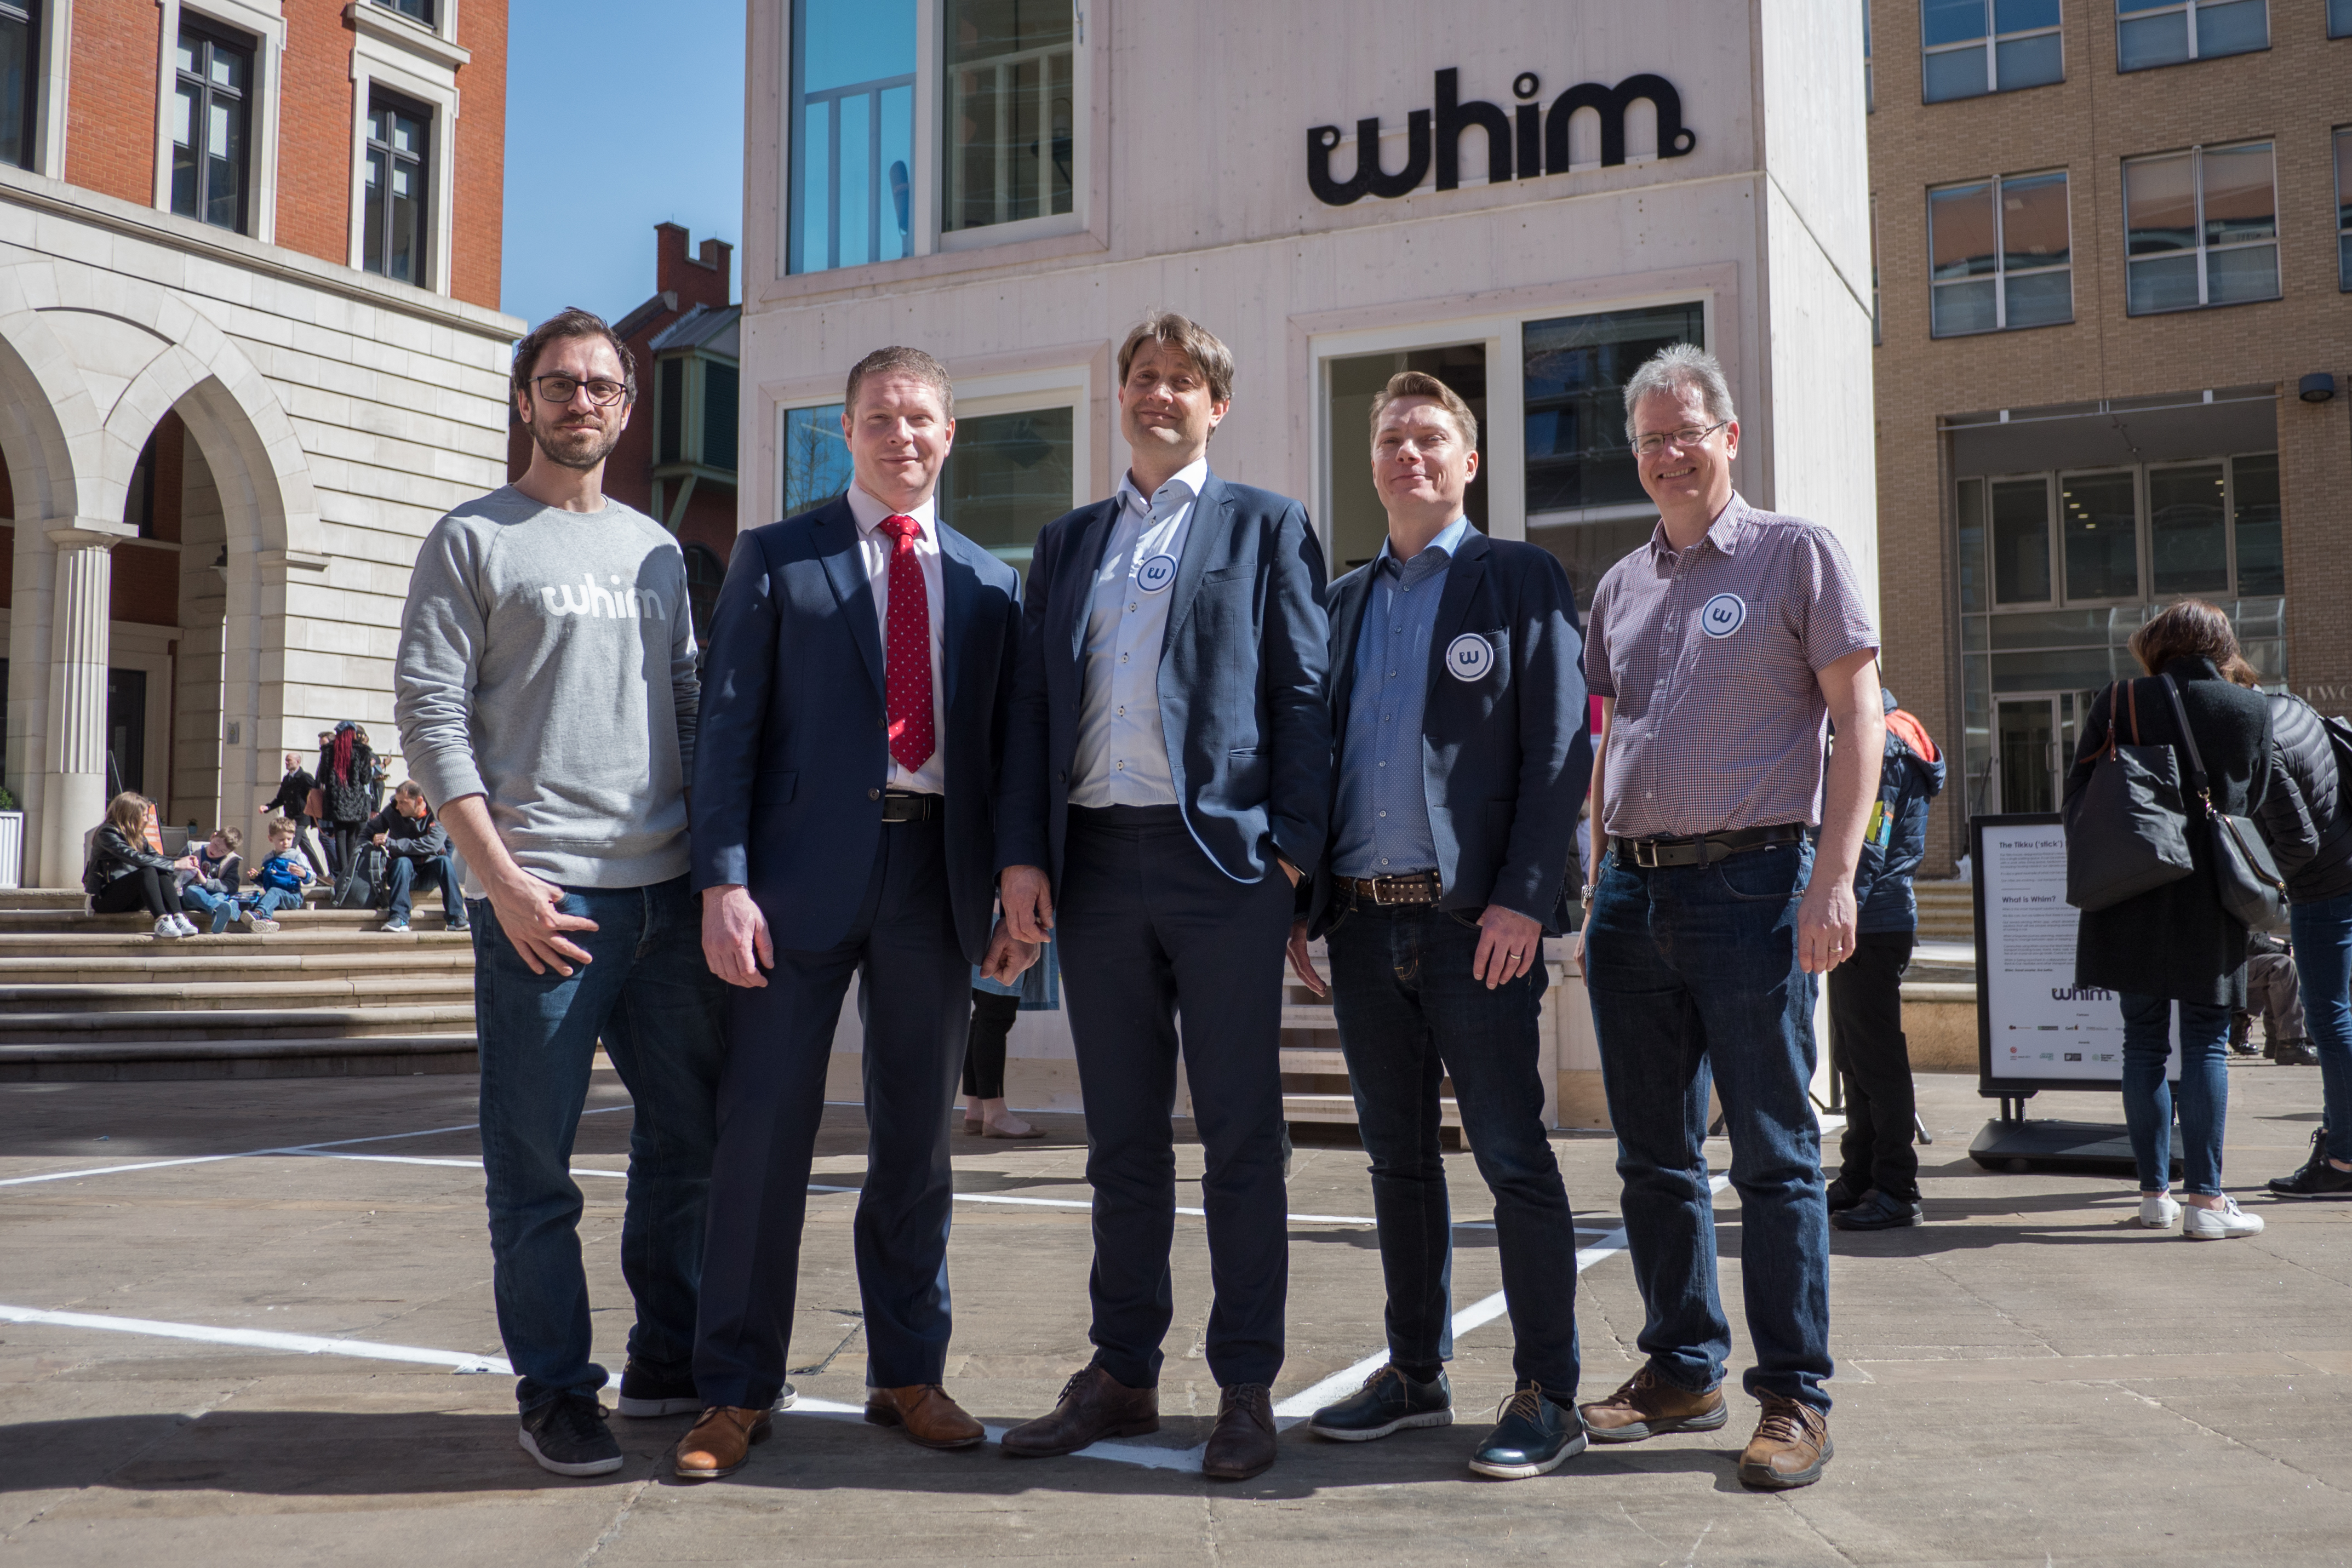 Whim launches in the UK | Fleet Europe